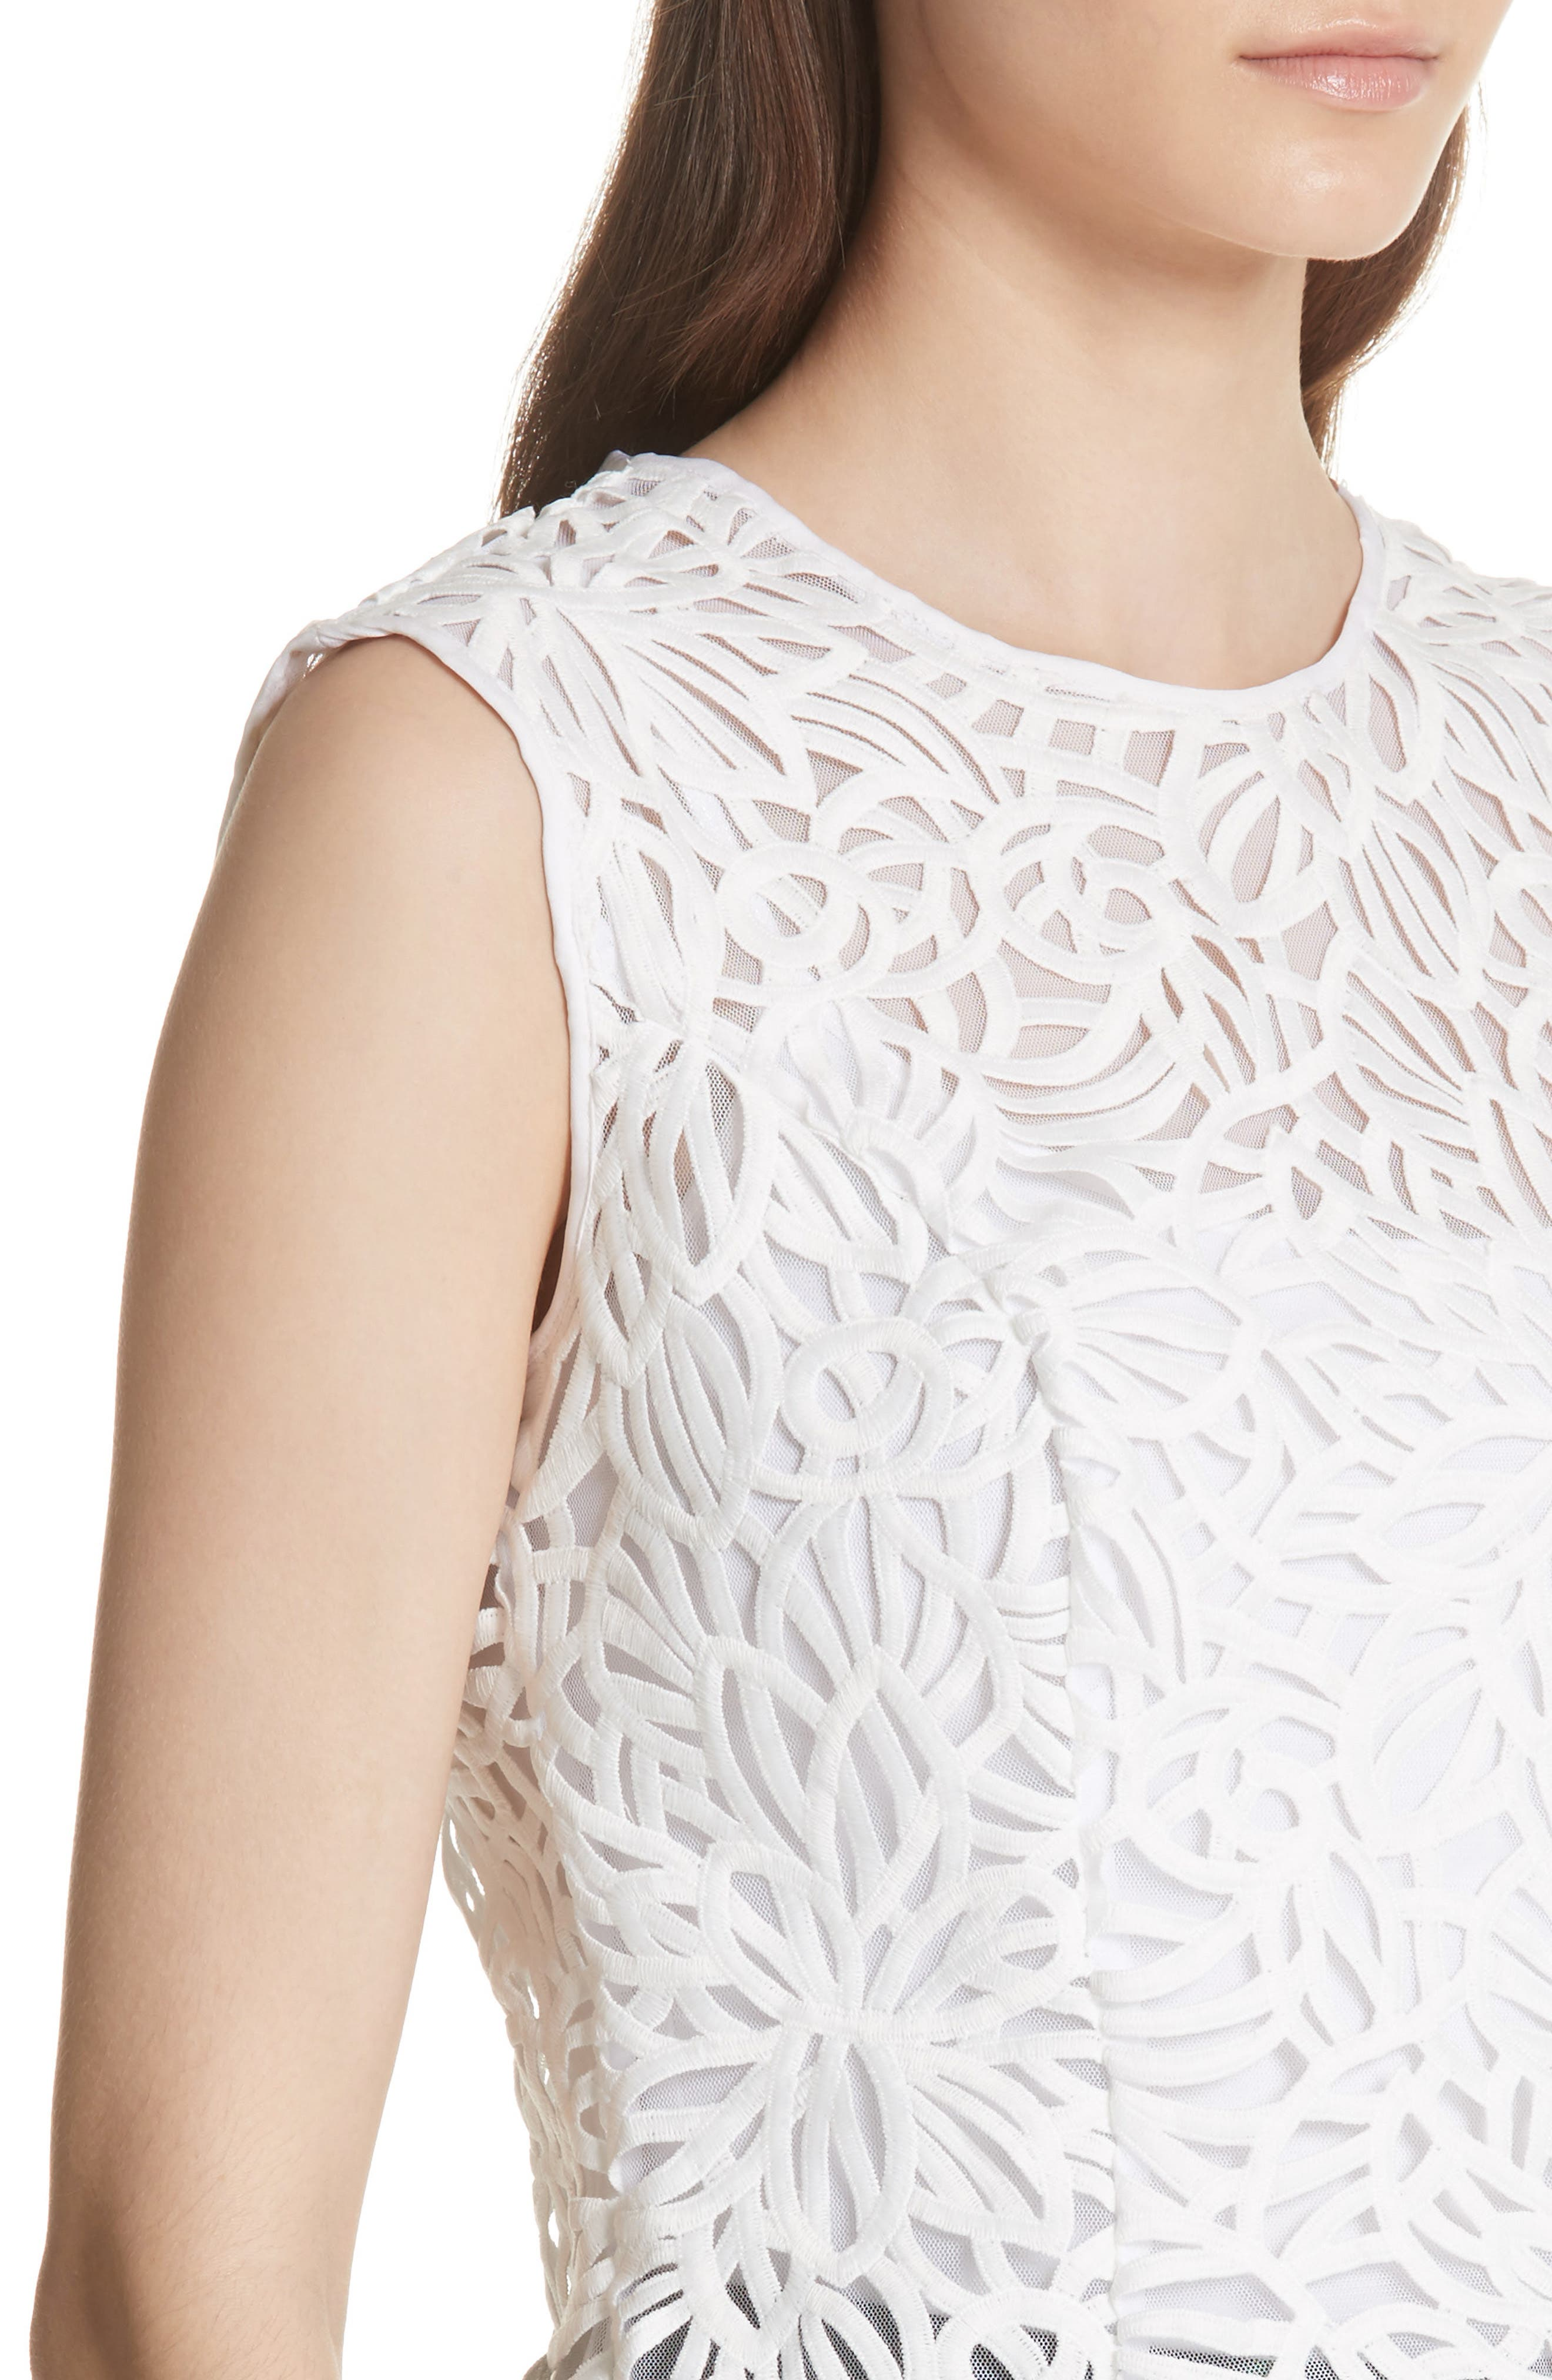 Irena Lace Top,                             Alternate thumbnail 4, color,                             White